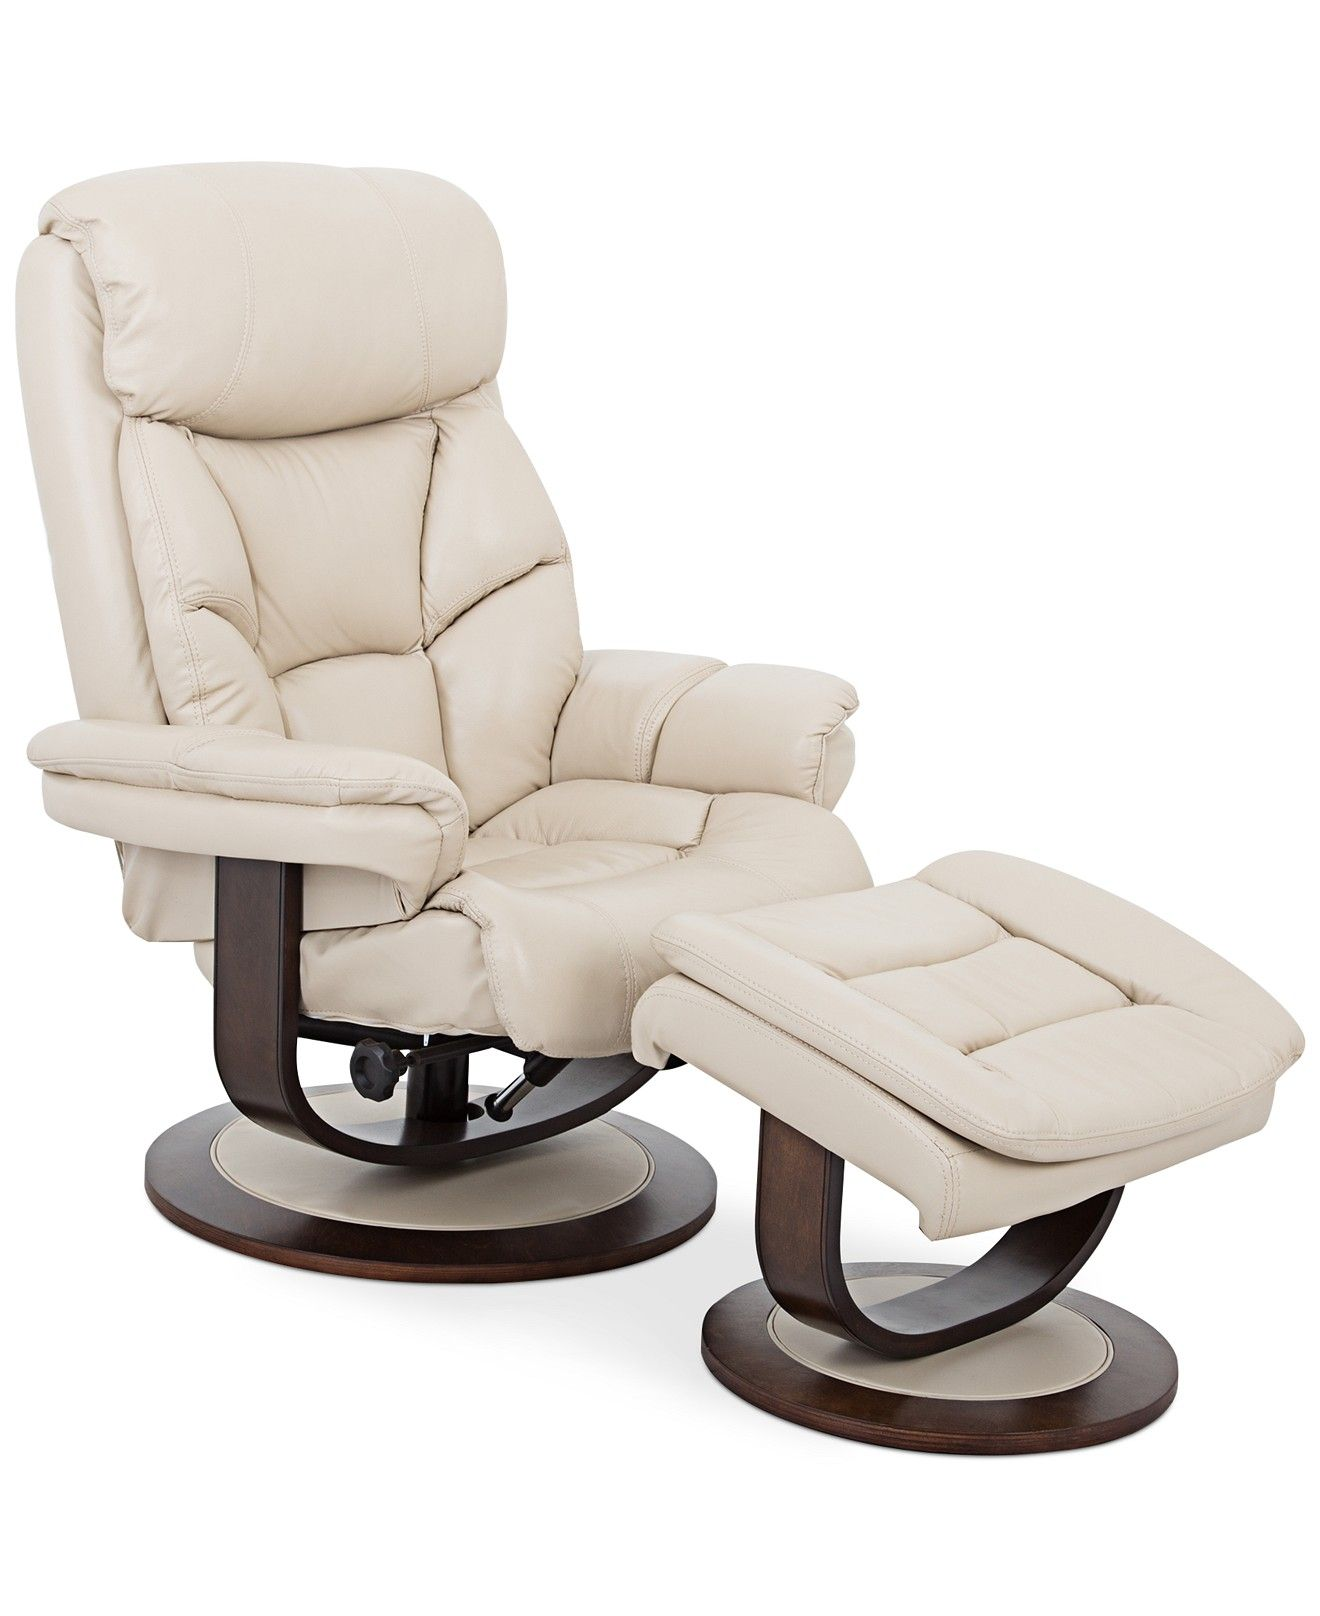 Aby Leather Recliner Chair & Ottoman Furniture Macy's